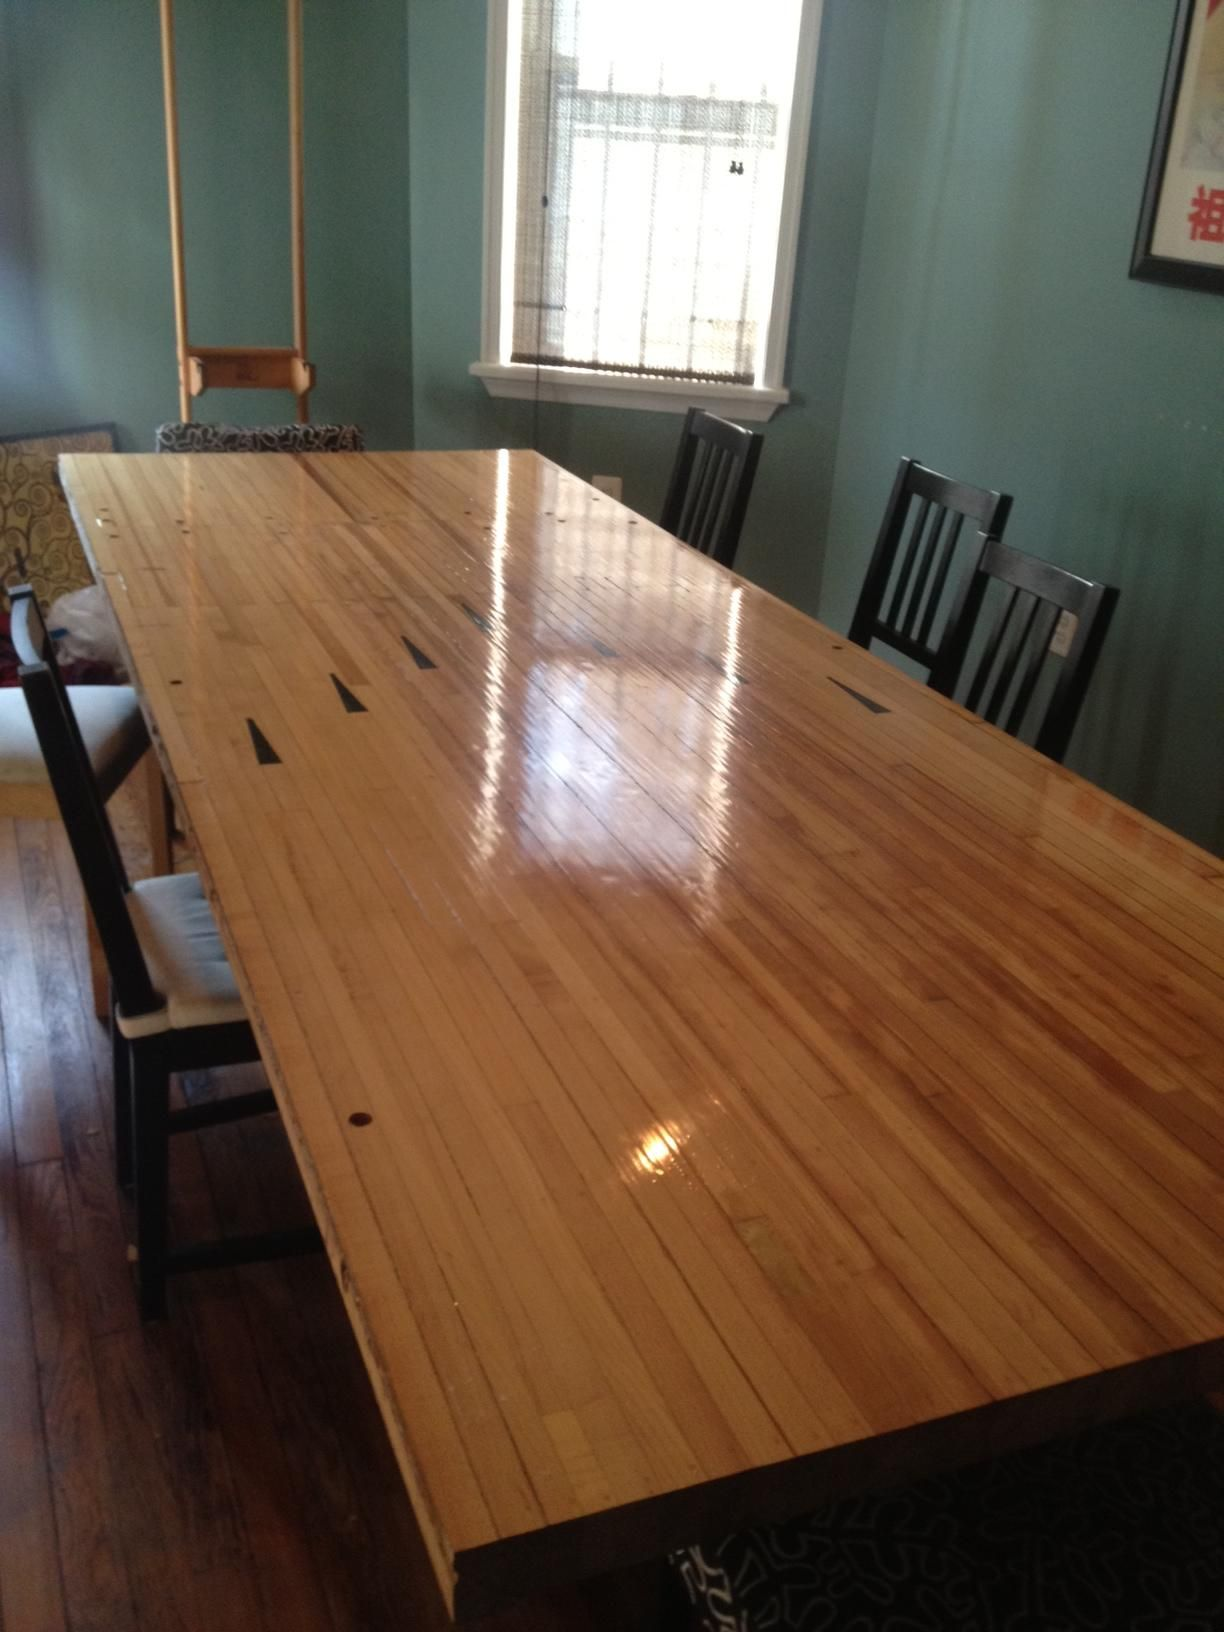 My Roommate Turned A Piece Of A Bowling Alley Into A Dining Room Table.